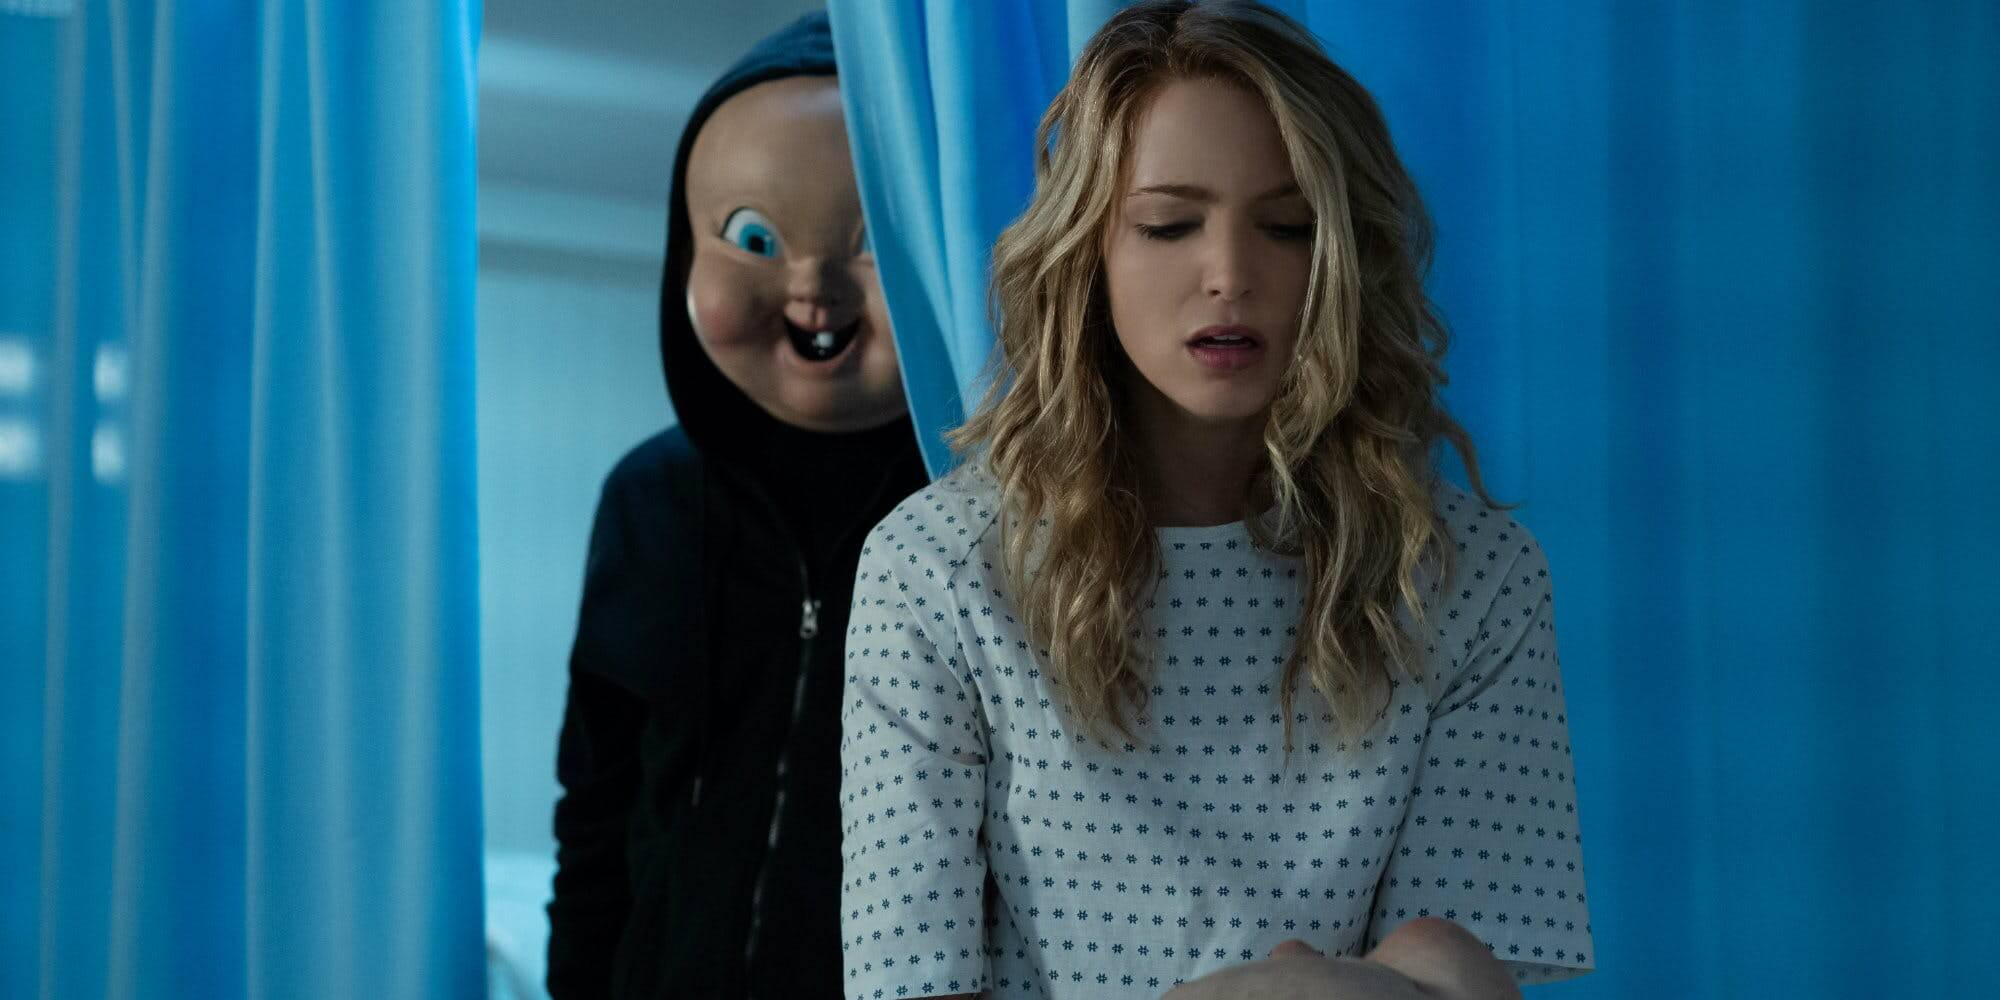 Jessica-Rothe-with-mask-in-Happy-Death-Day-2U